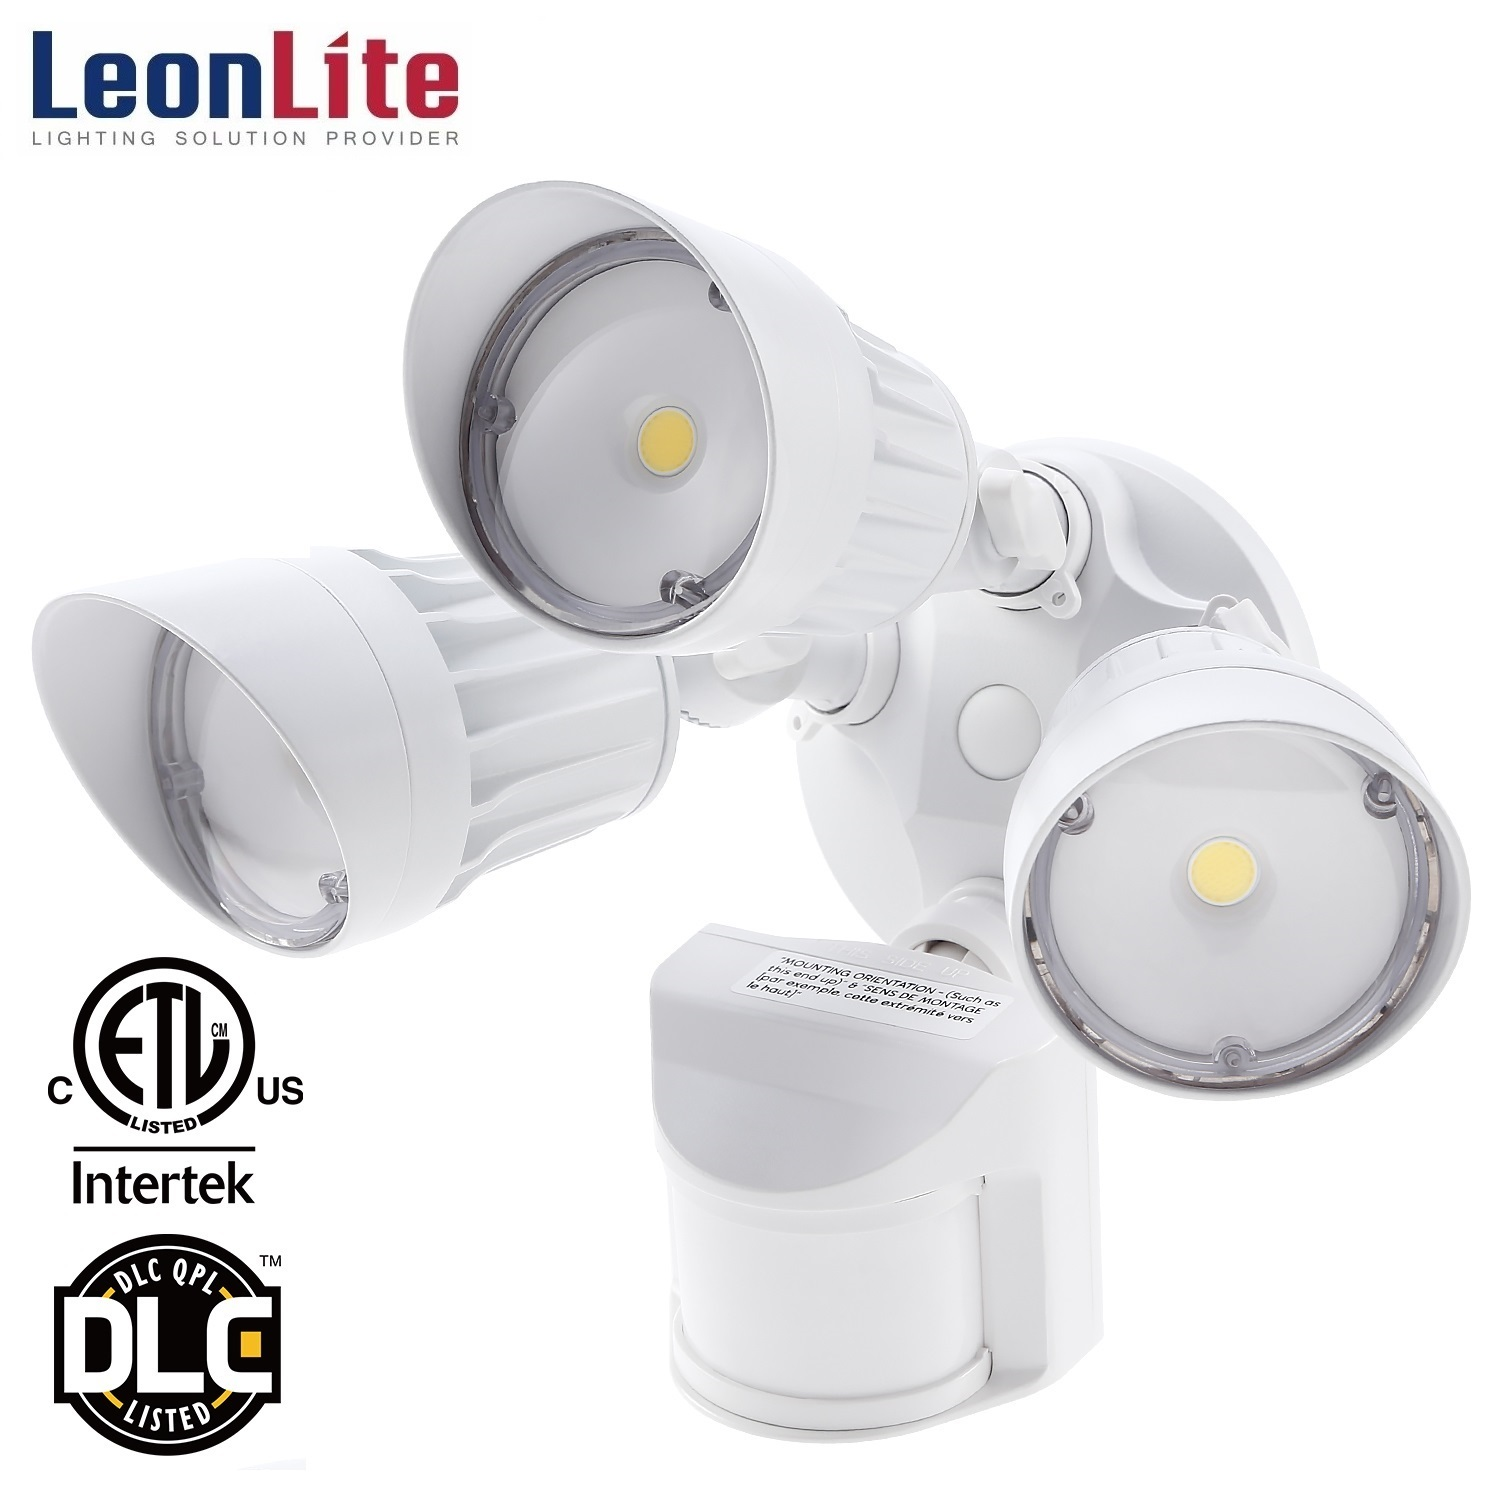 LEONLITE 30W LED Security Lights With Motion Sensor, Outdoor Security Lights for Patio, Yard, 5000K Daylight, White